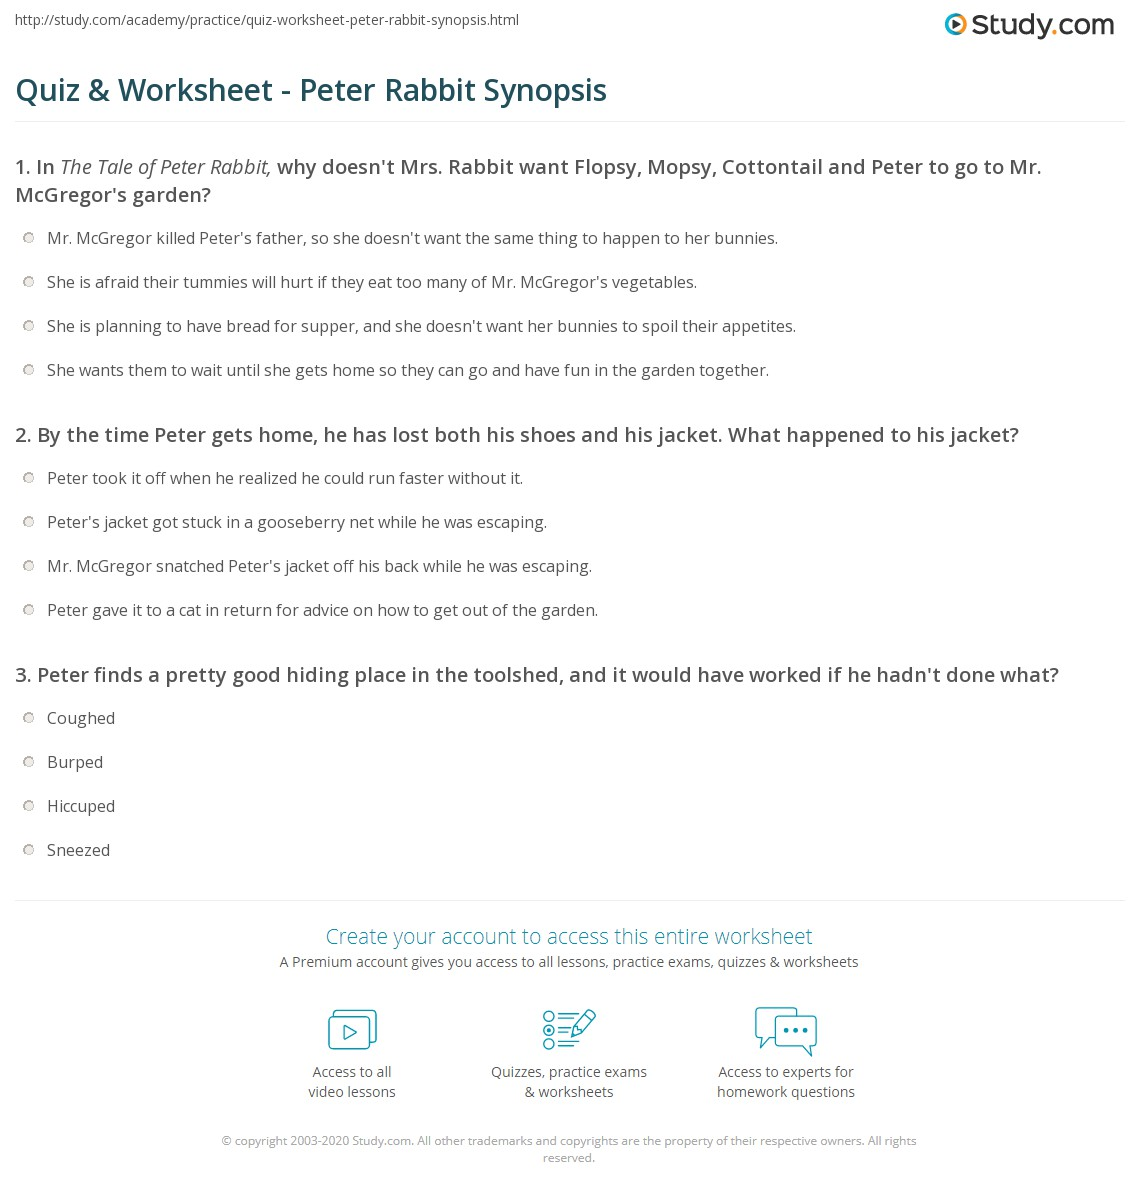 Uncategorized Frog And Toad Together Worksheets quiz worksheet peter rabbit synopsis study com print the tale of summary worksheet